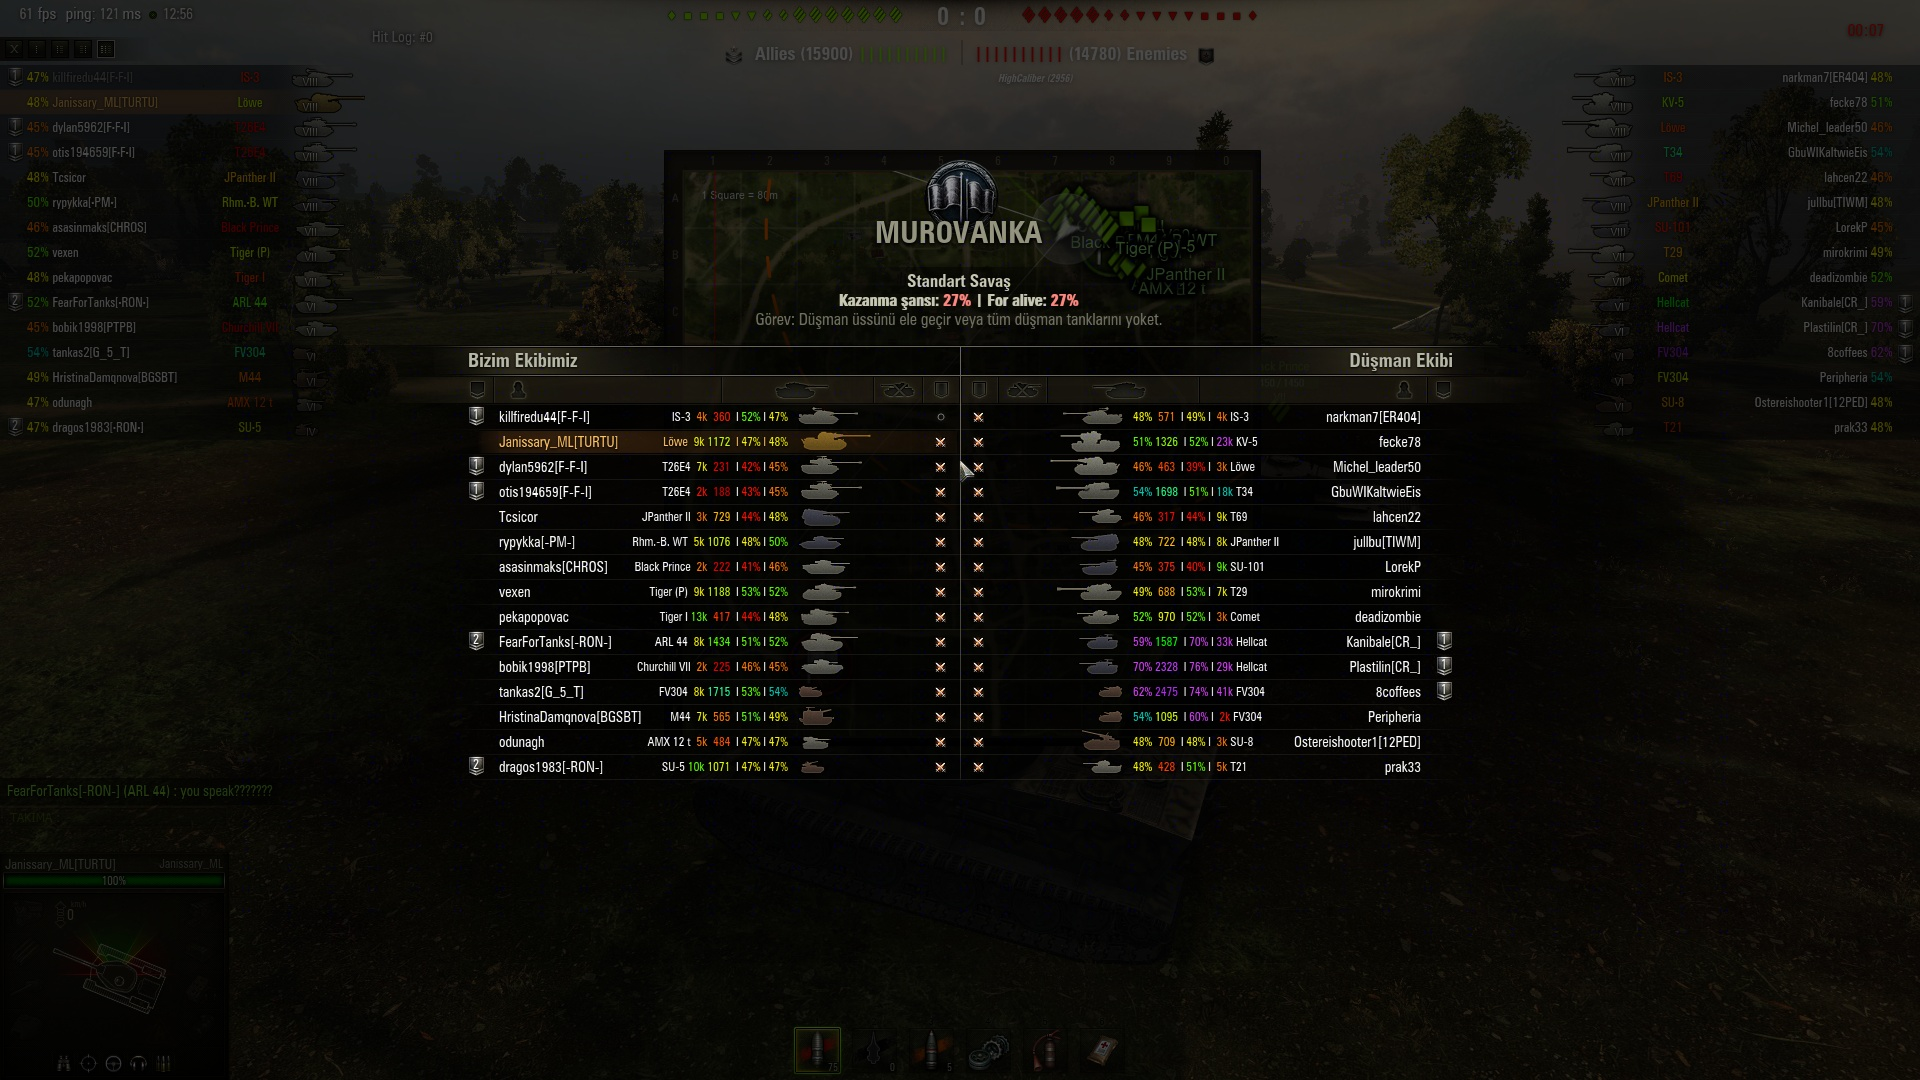 matchmaking kv1s Mongolchuudin flings chat chat room [private] created by kv1s: ailguiteh nuuts holboo togtooh cam chat hiih oxford friends chat room [public] created by vbaars:.